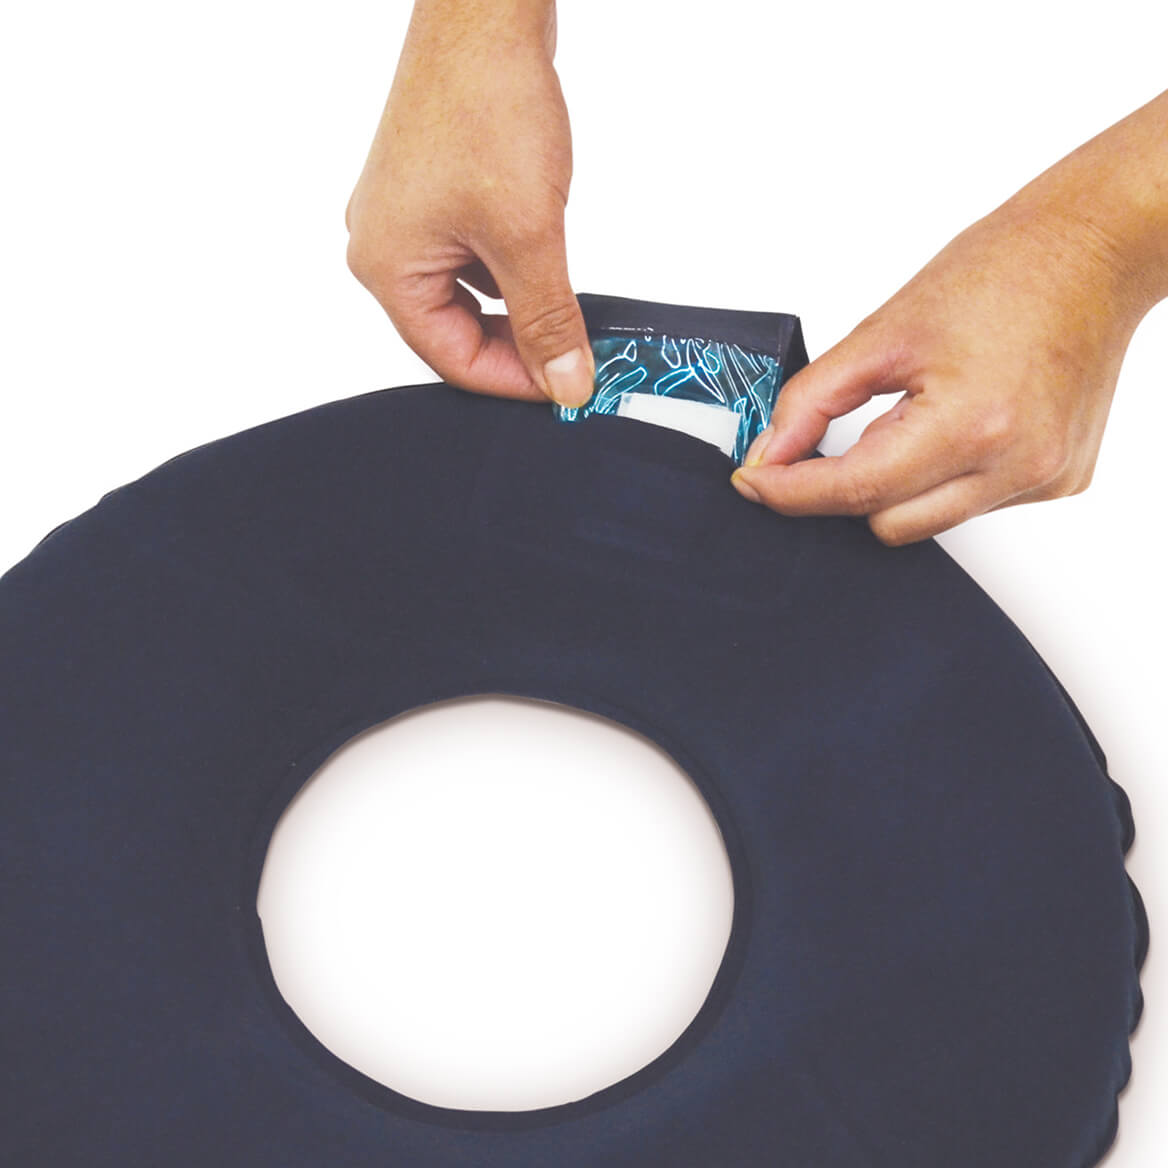 Auto Inflating Donut Cushion-370103